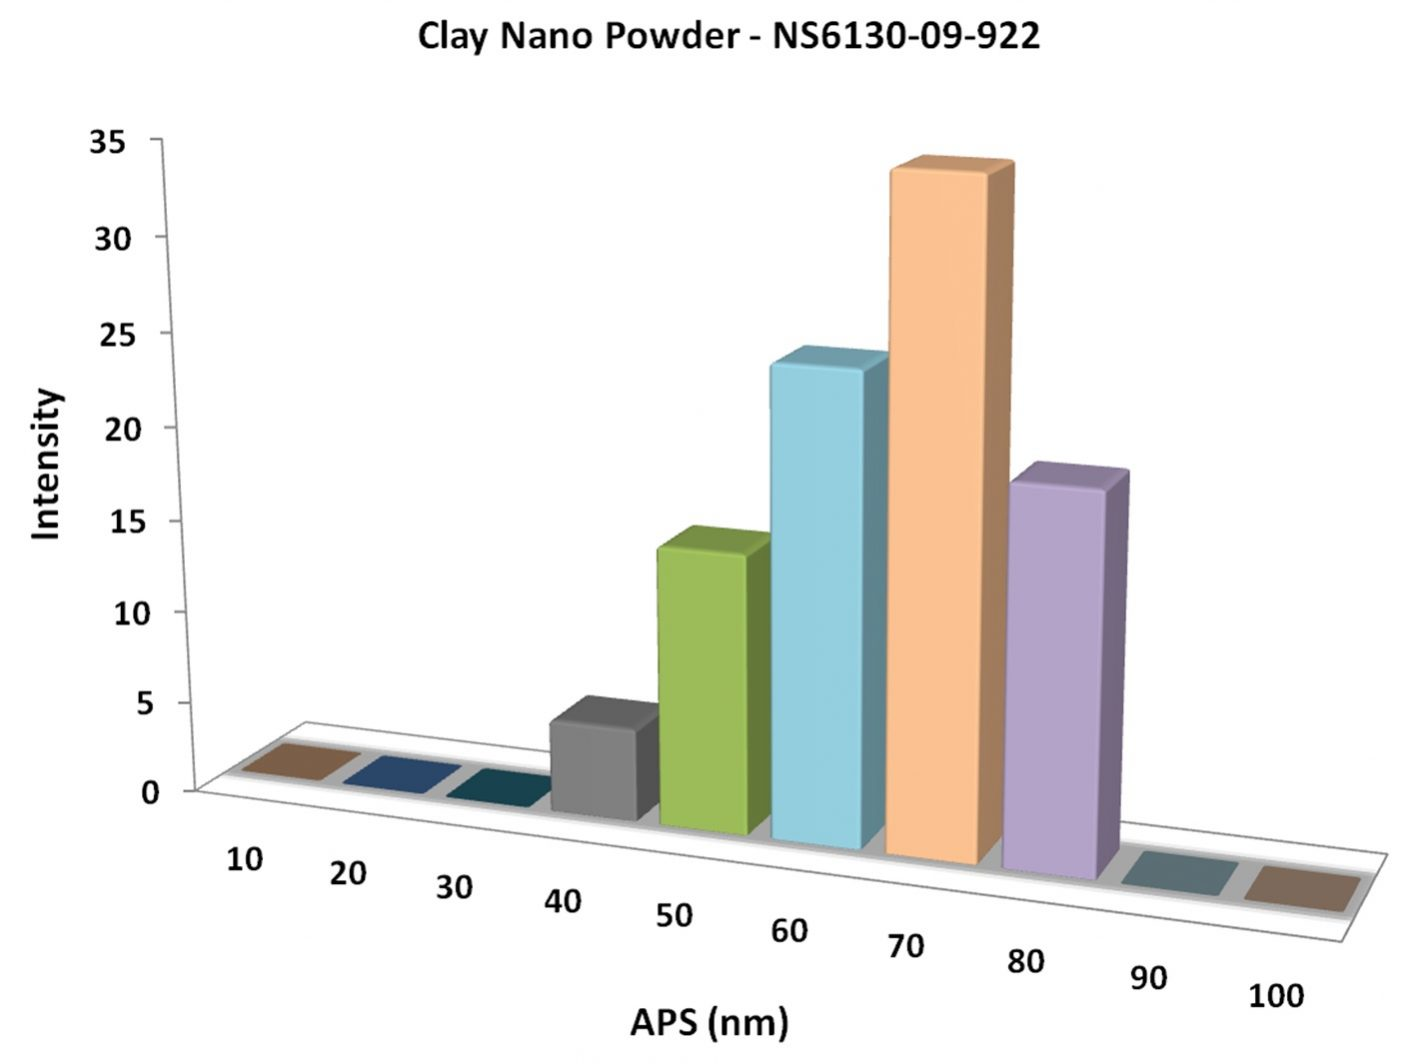 Particles Size Analysis - Clay Nanoparticles